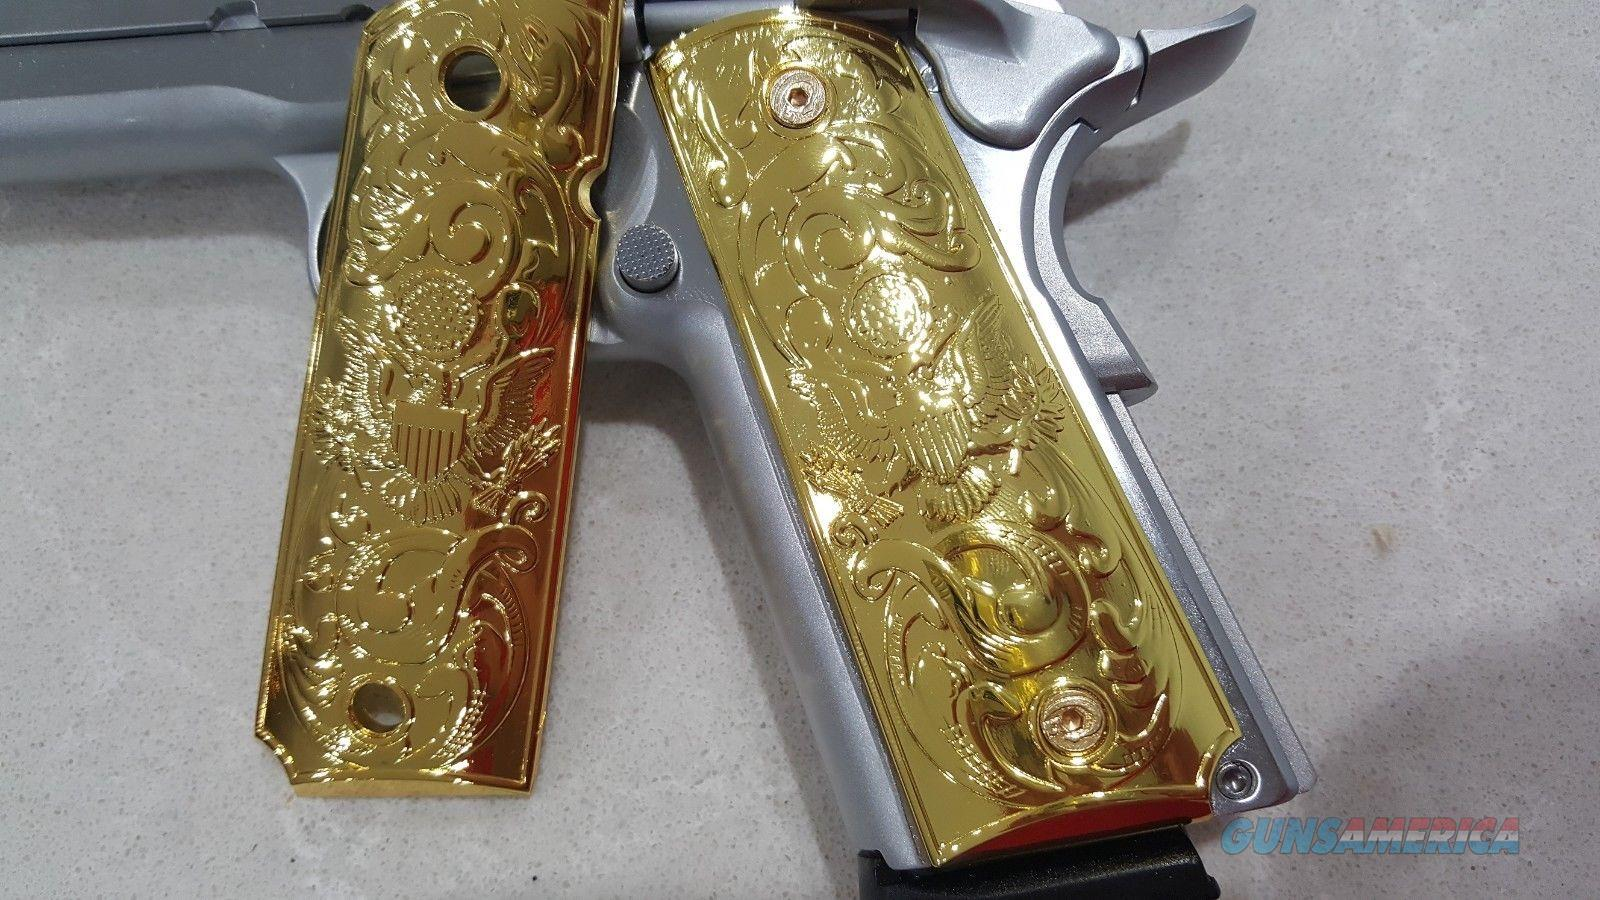 1911 Grips Custom METAL GRIPS Colt Full Size Government US Army Gold Plated  Non-Guns > Gun Parts > 1911